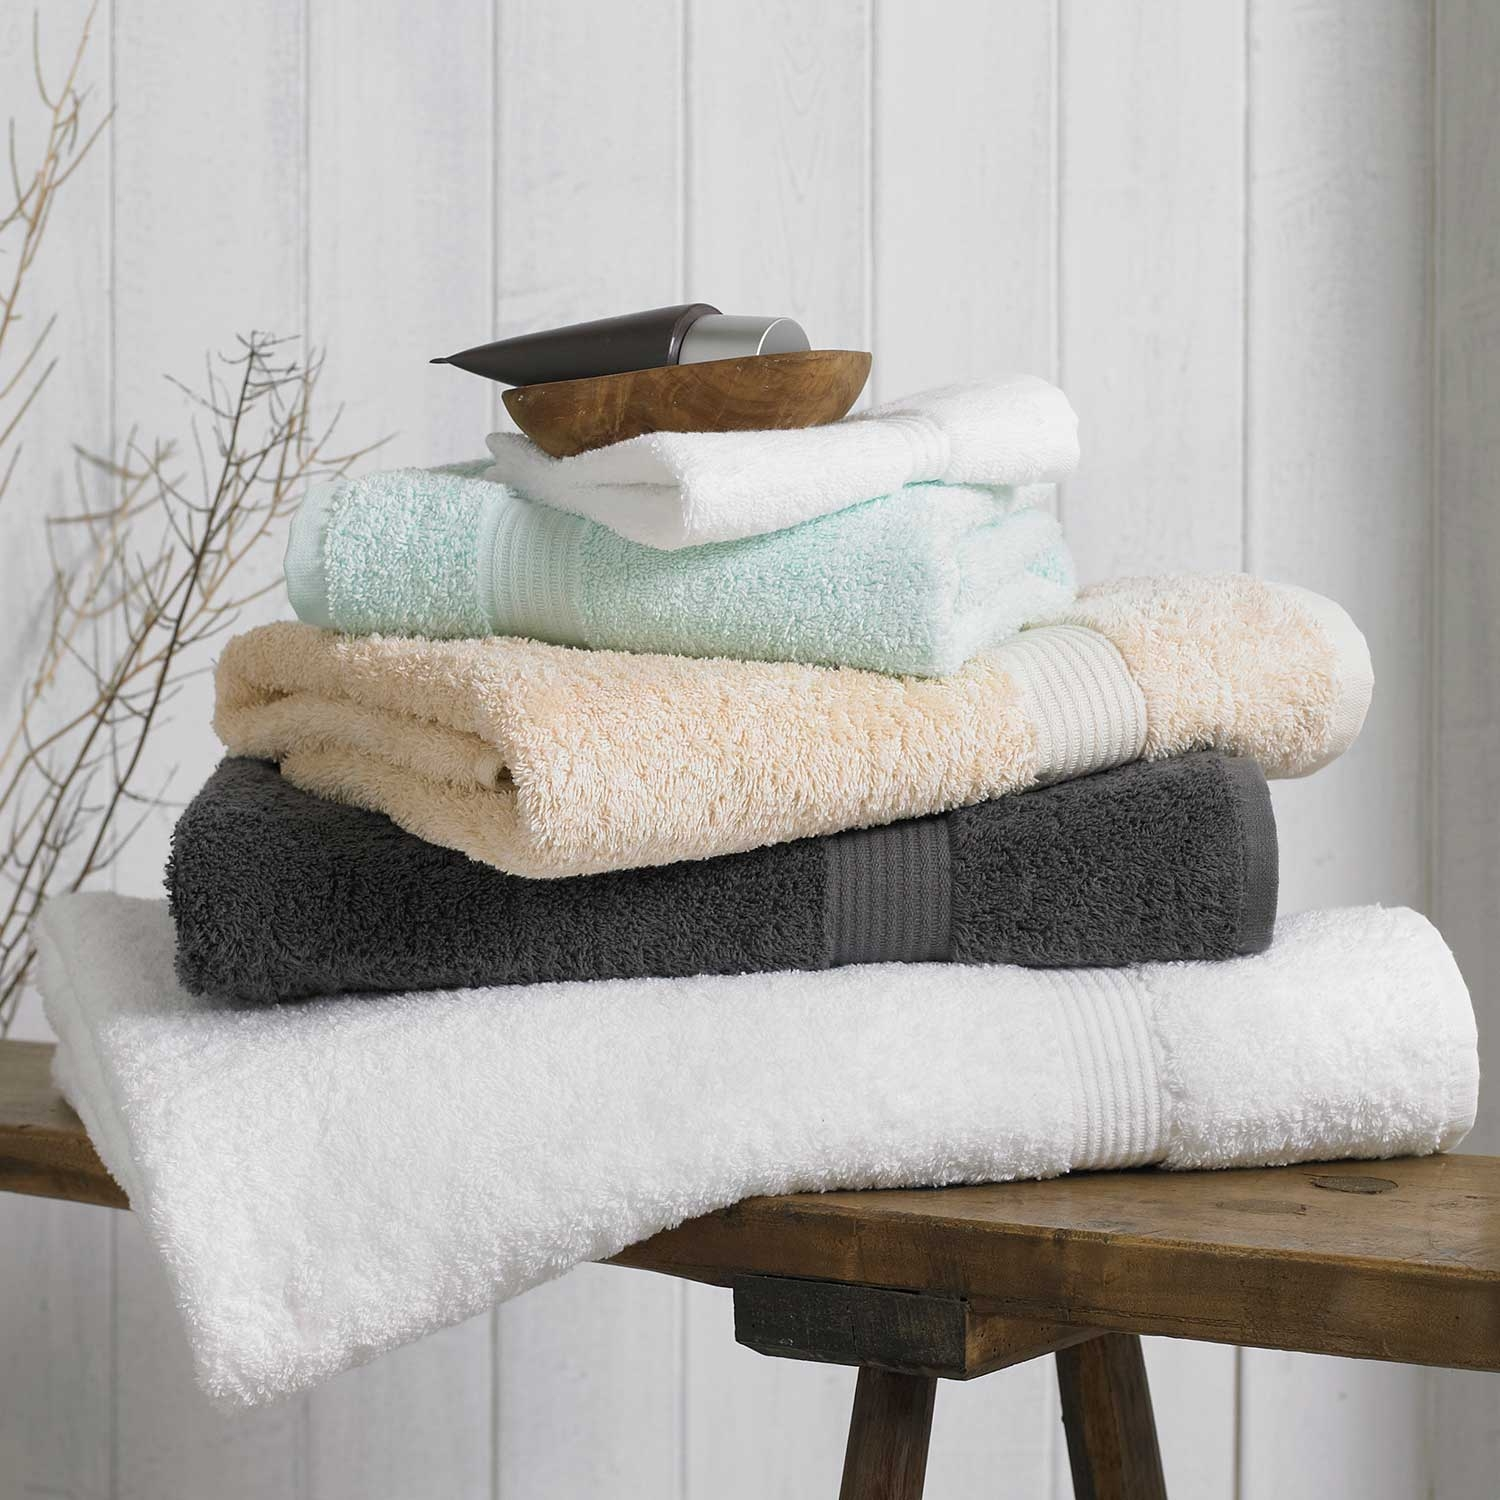 Luxe-towels-main_3.jpg